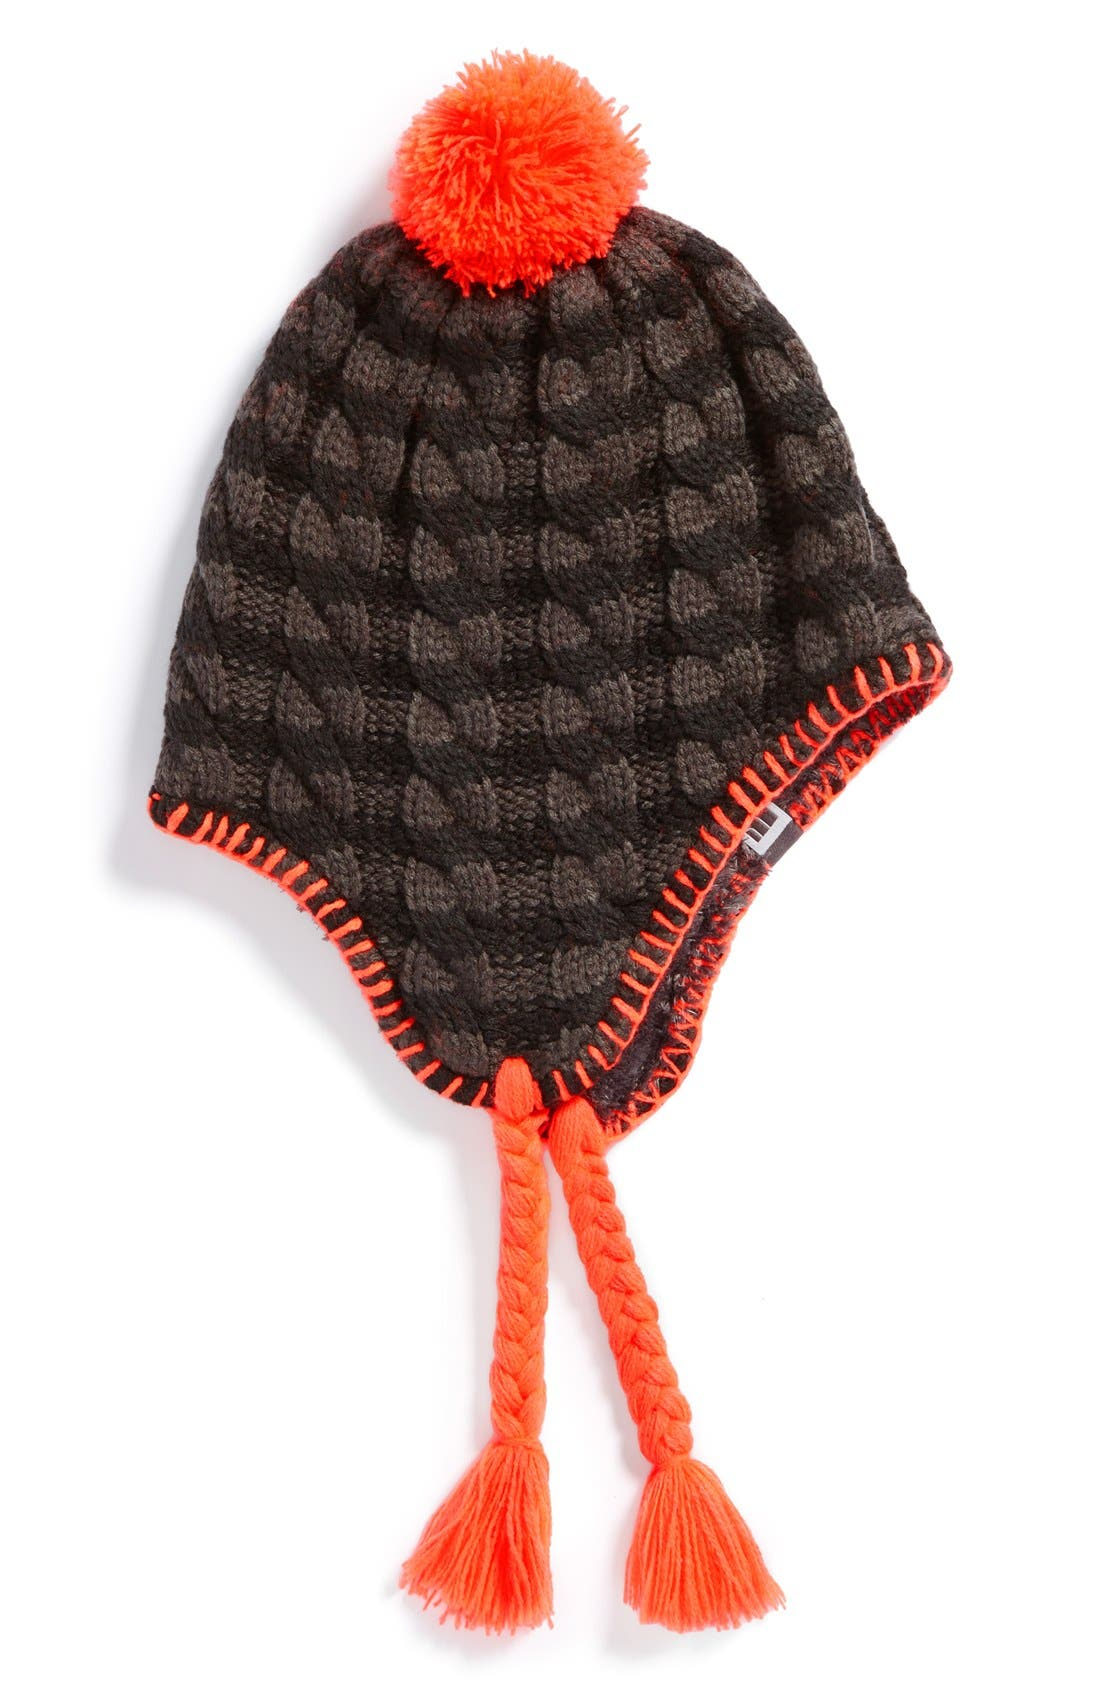 Alternate Image 1 Selected - The North Face 'Fuzzy Earflap' Beanie (Big Girls) (Online Only)